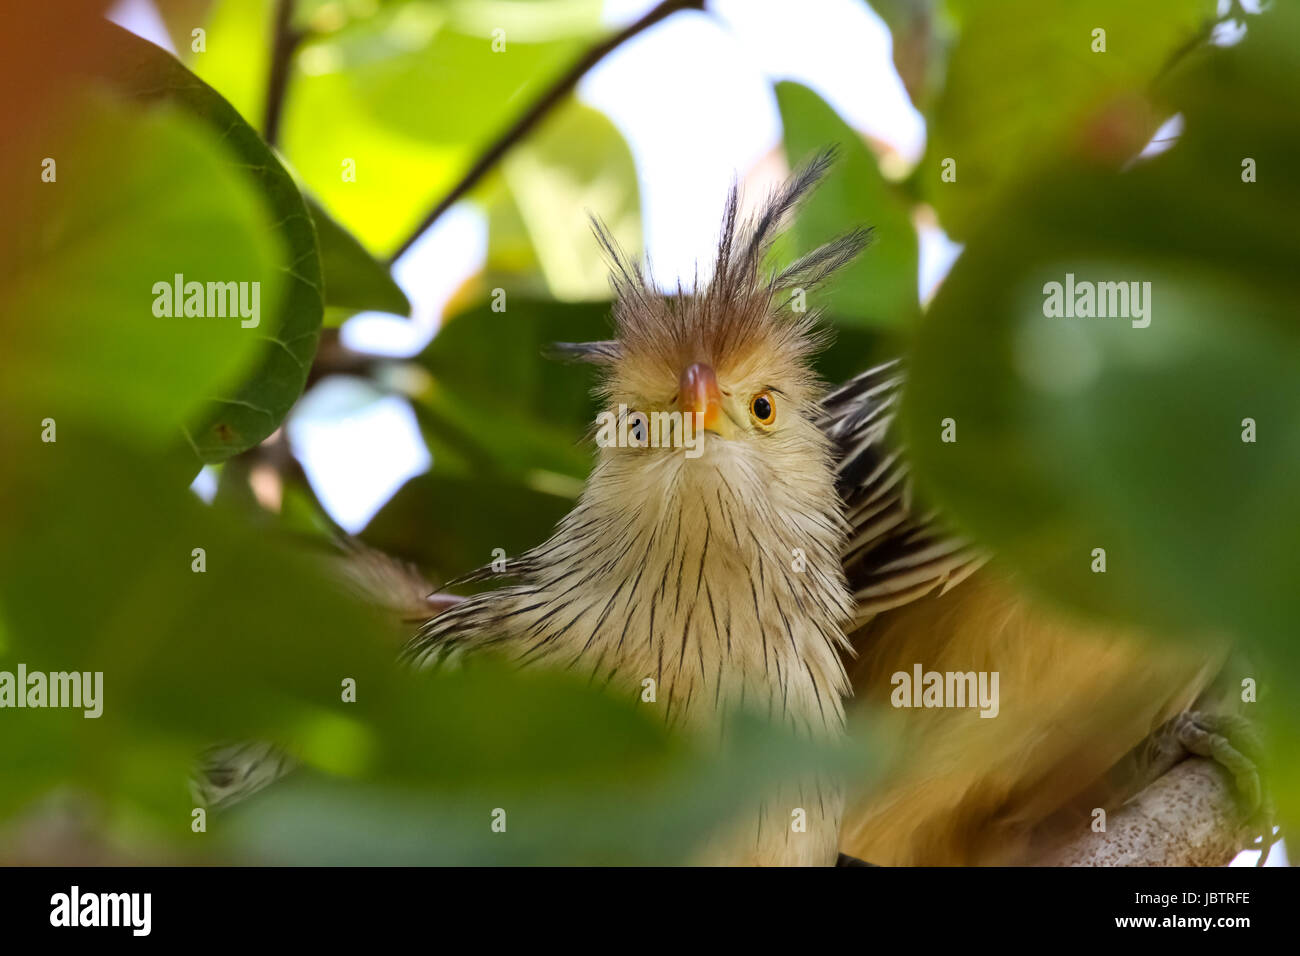 Close up of Guira cuckoo in a tree, Amazon, Brazil - Stock Image